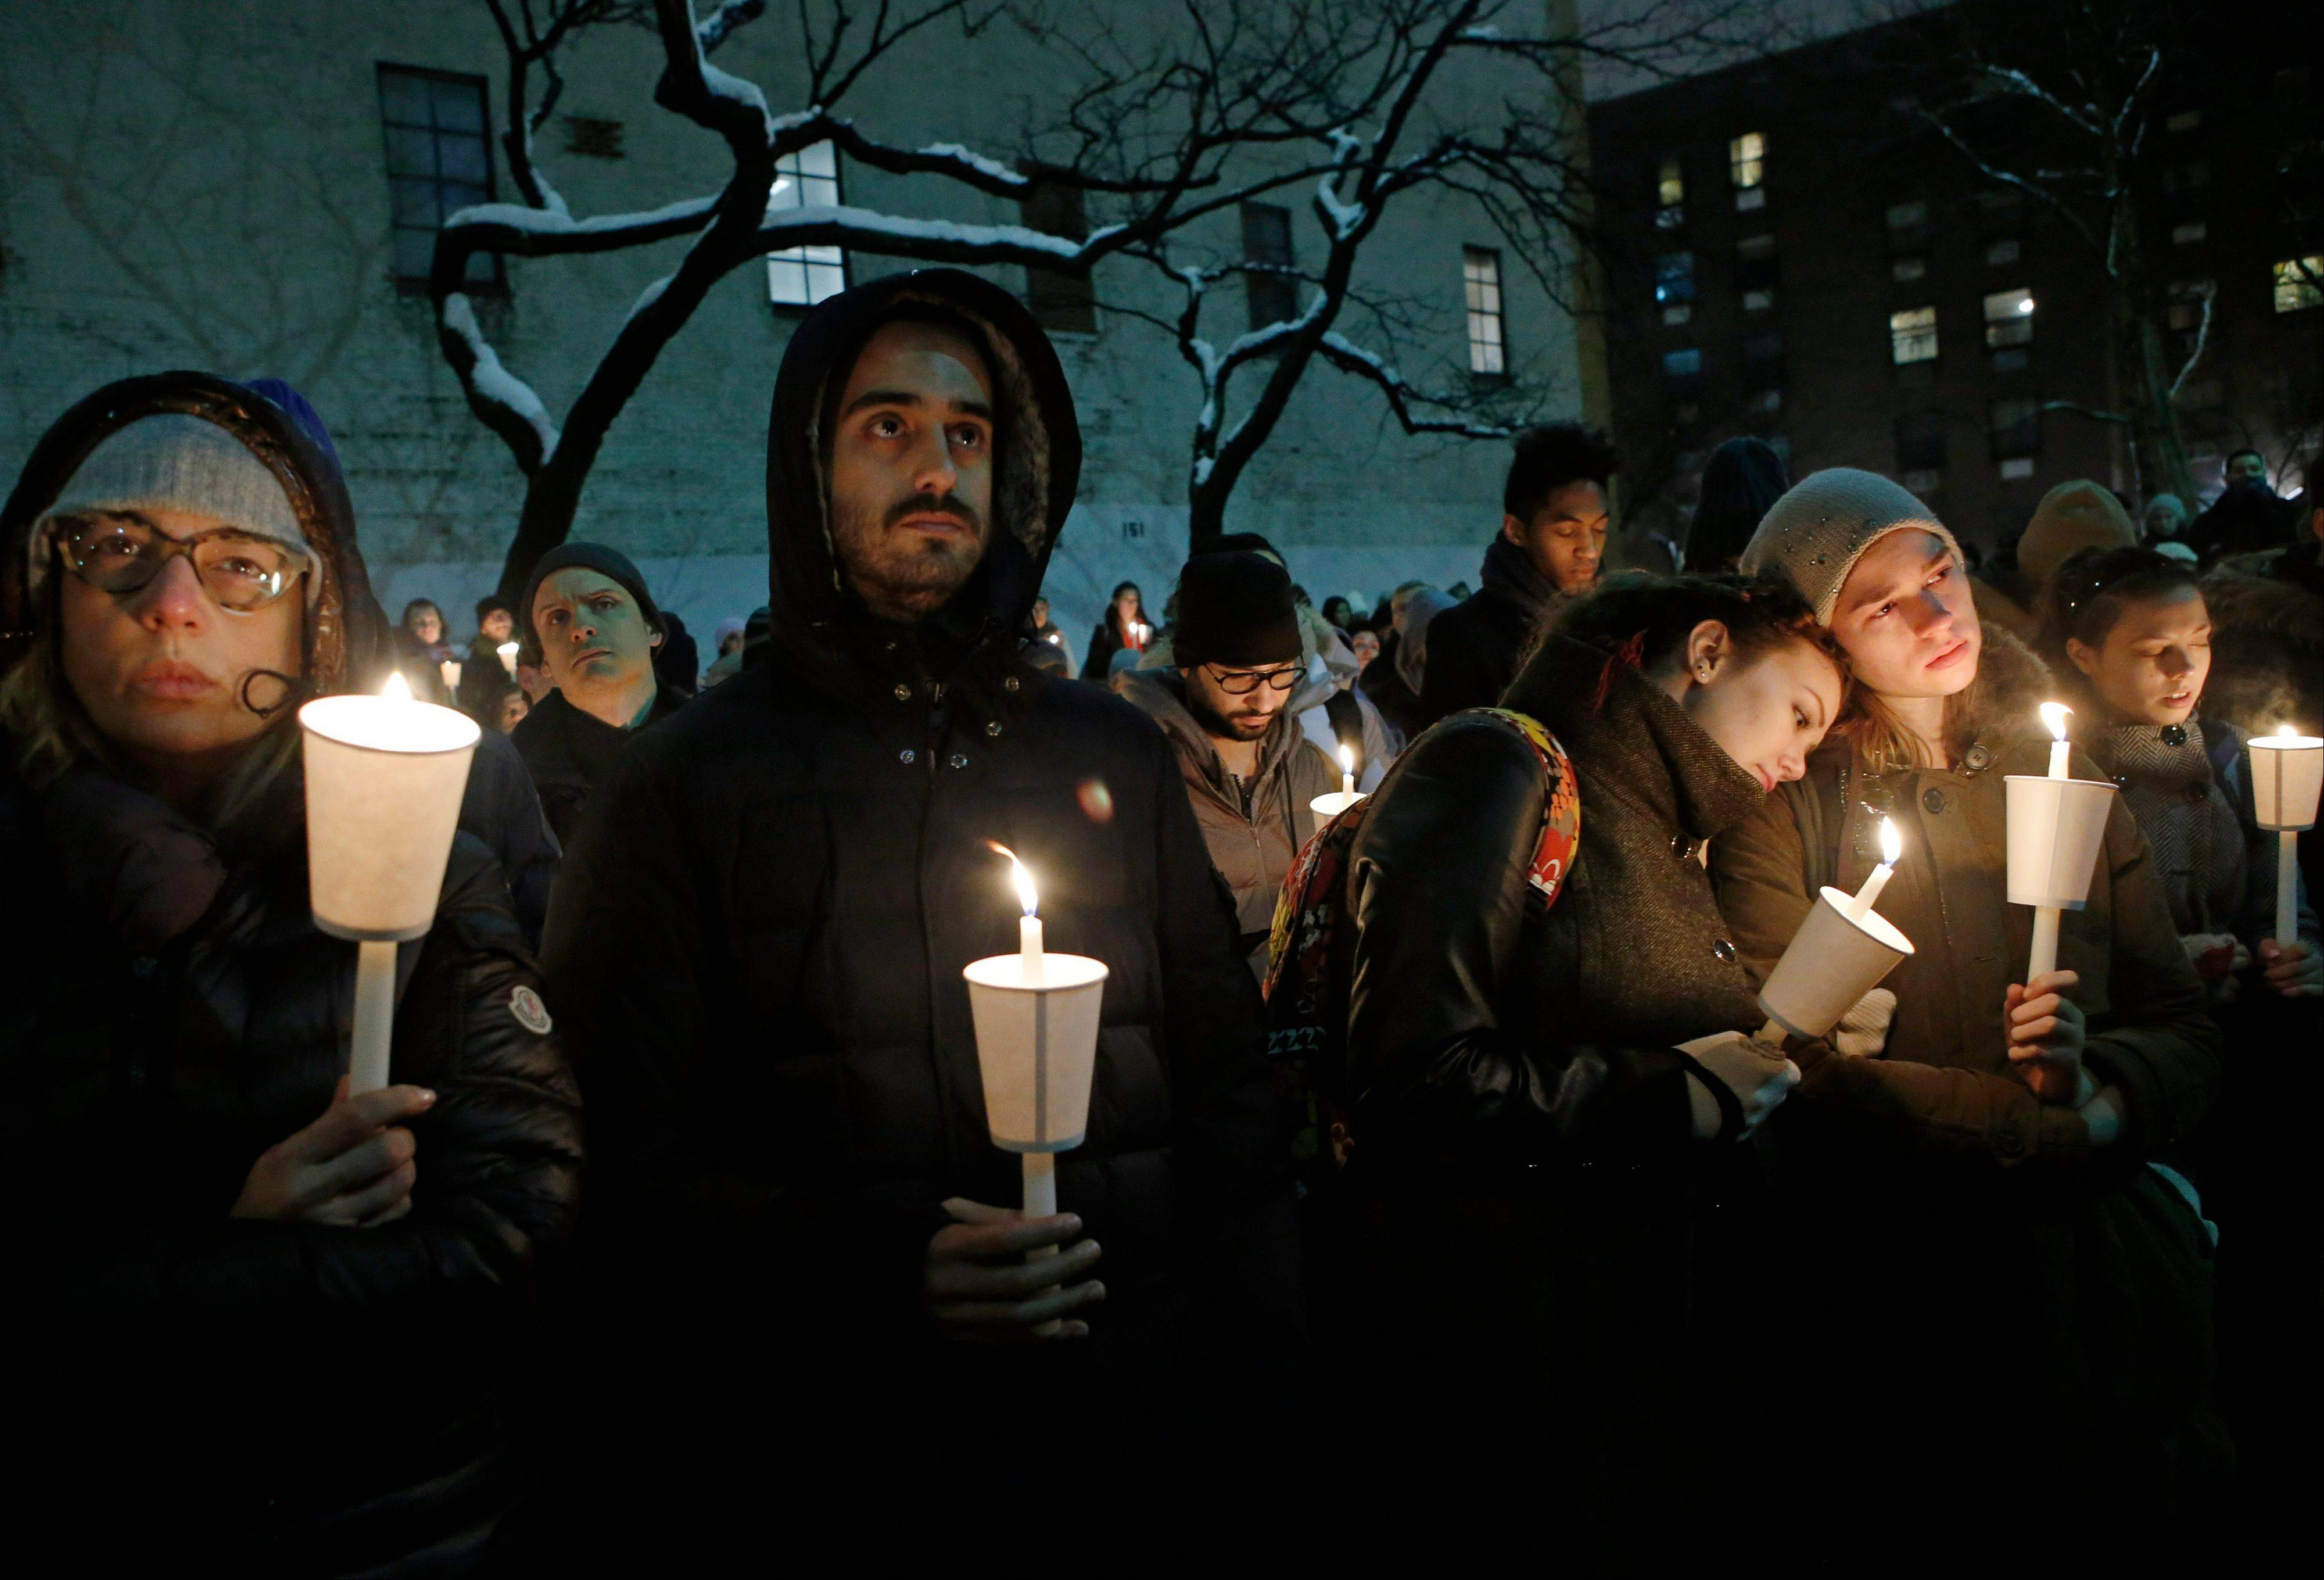 People listen to actor Eric Bogosian speak during a candlelight vigil for actor Philip Seymour Hoffman at the Bank Street Theater, home of the Labyrinth Theater Company, Wednesday, Feb. 5, 2014, in New York. Hoffman died Sunday of a suspected drug overdose.